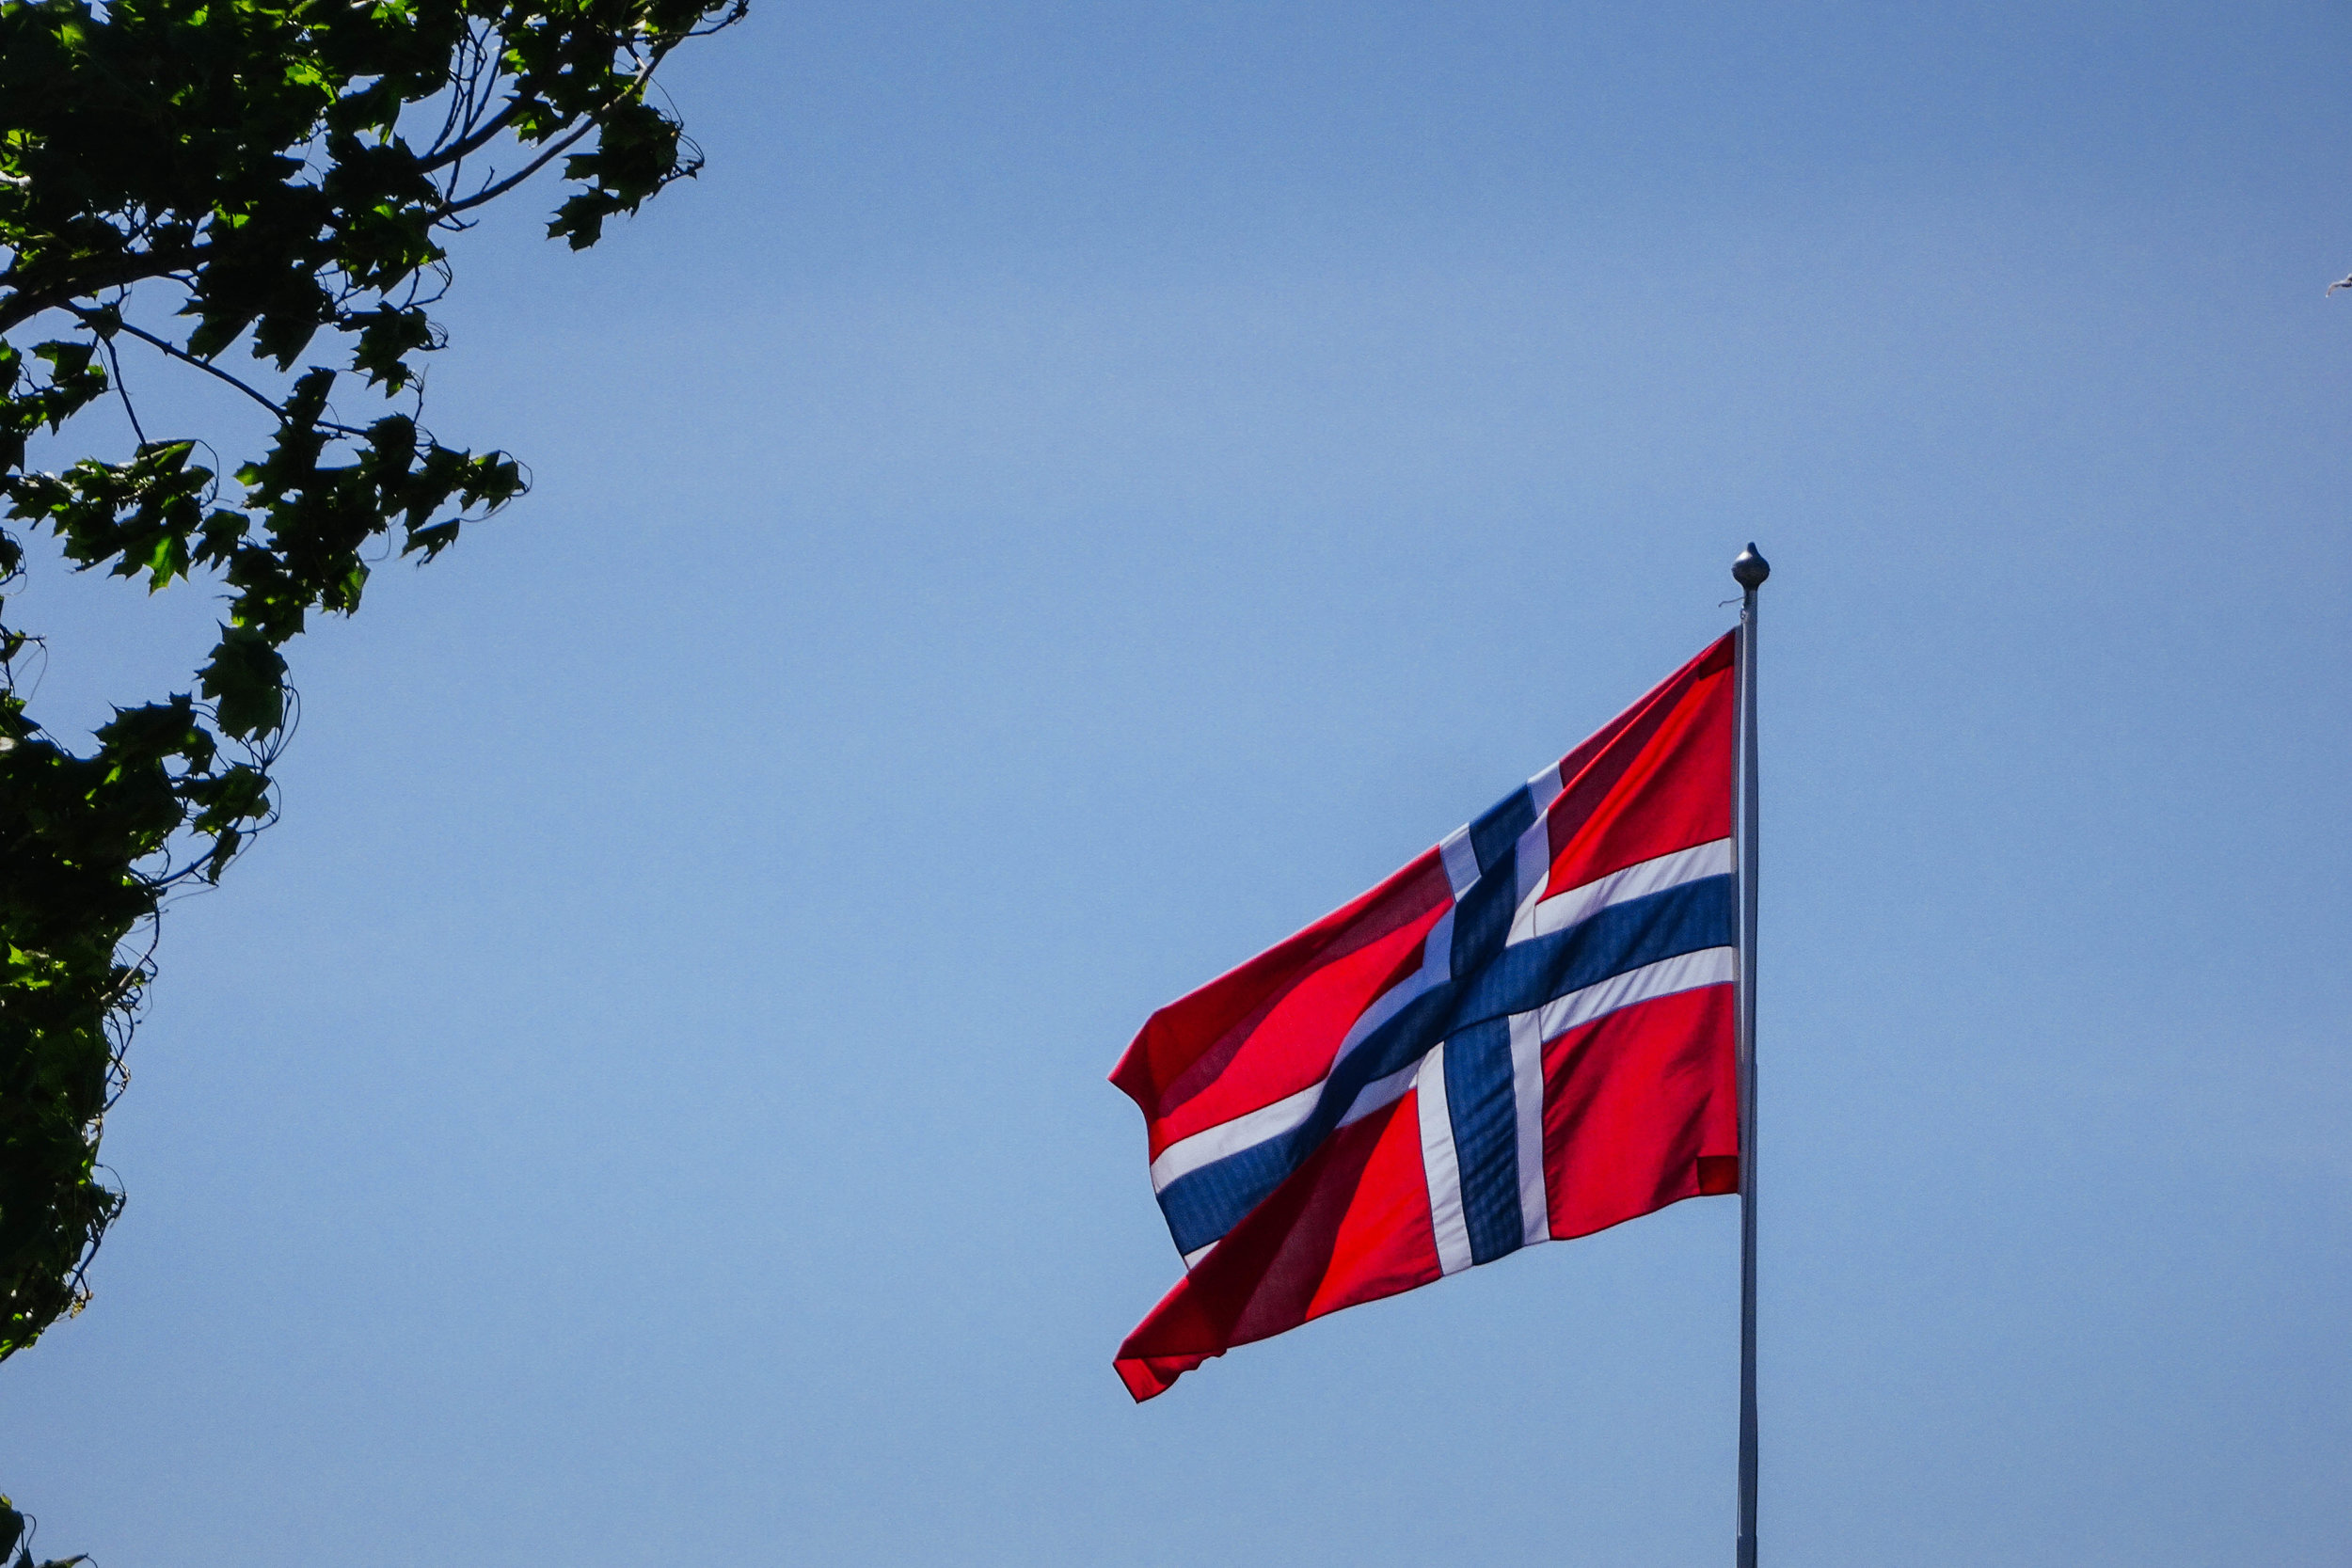 But enough of the food now! If you're visiting Norway on May 17th, you'll literally see the Norwegian flag everywhere you go!